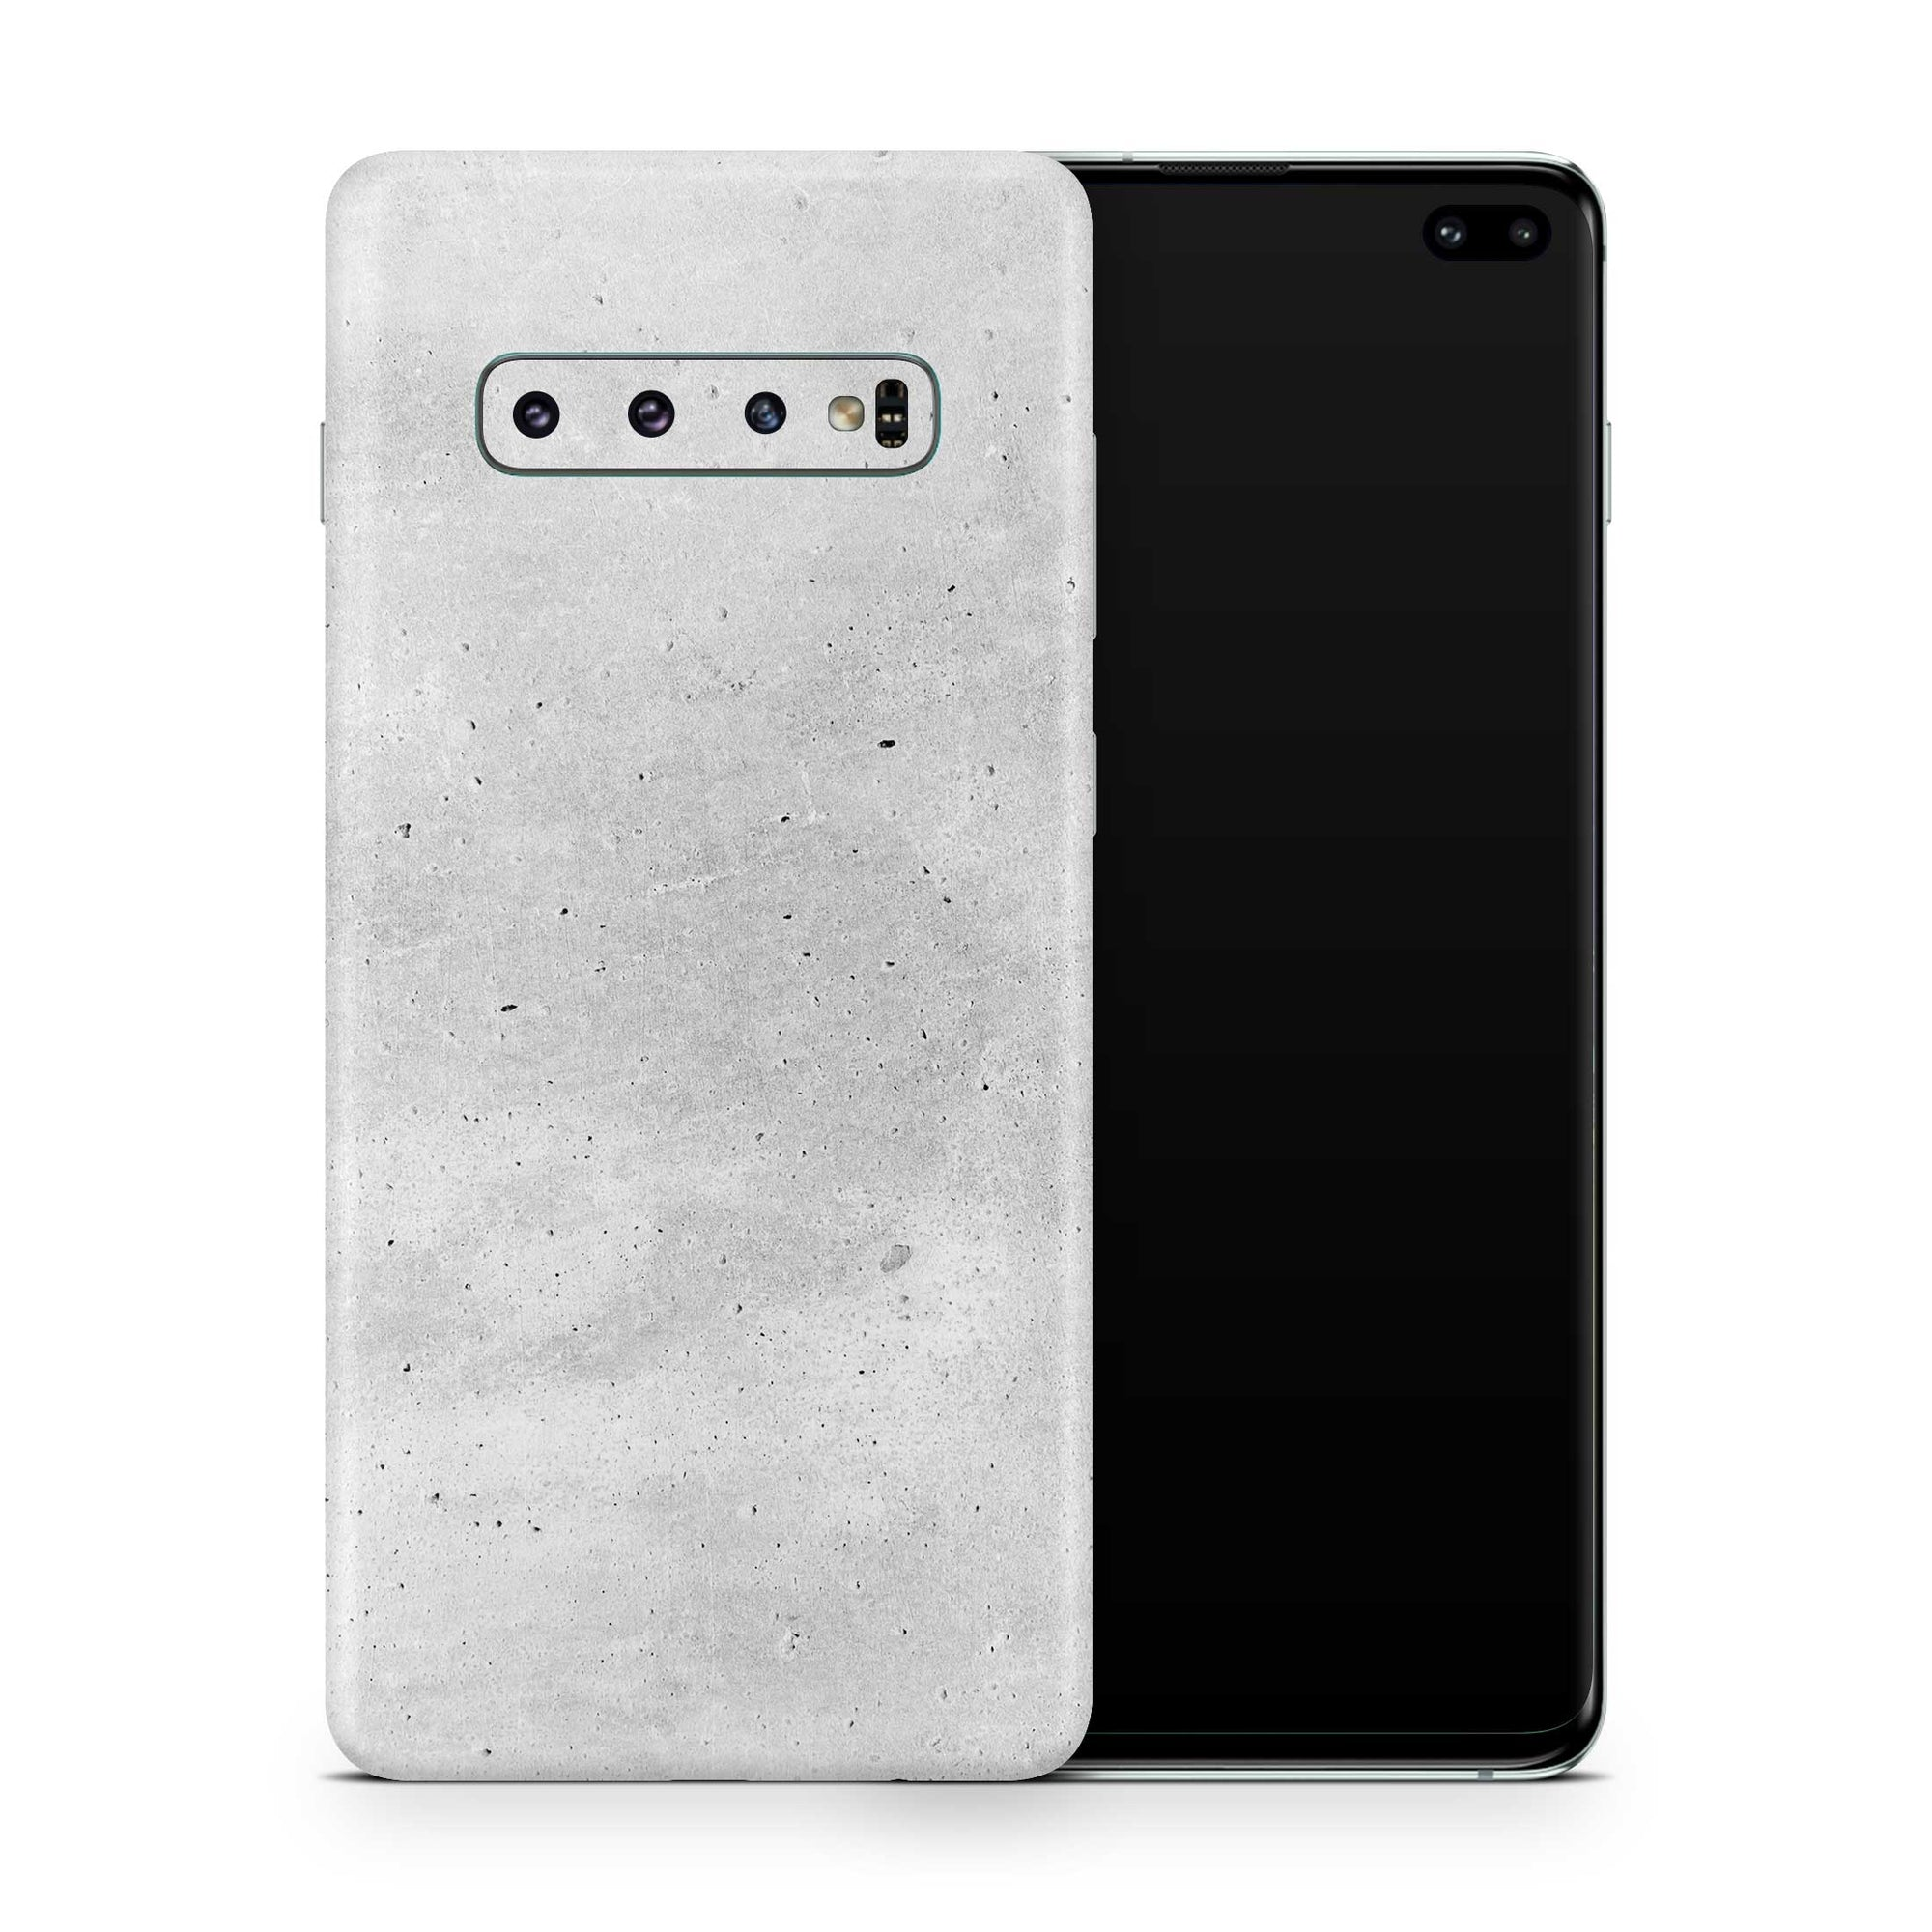 Concrete S10 5G Cover